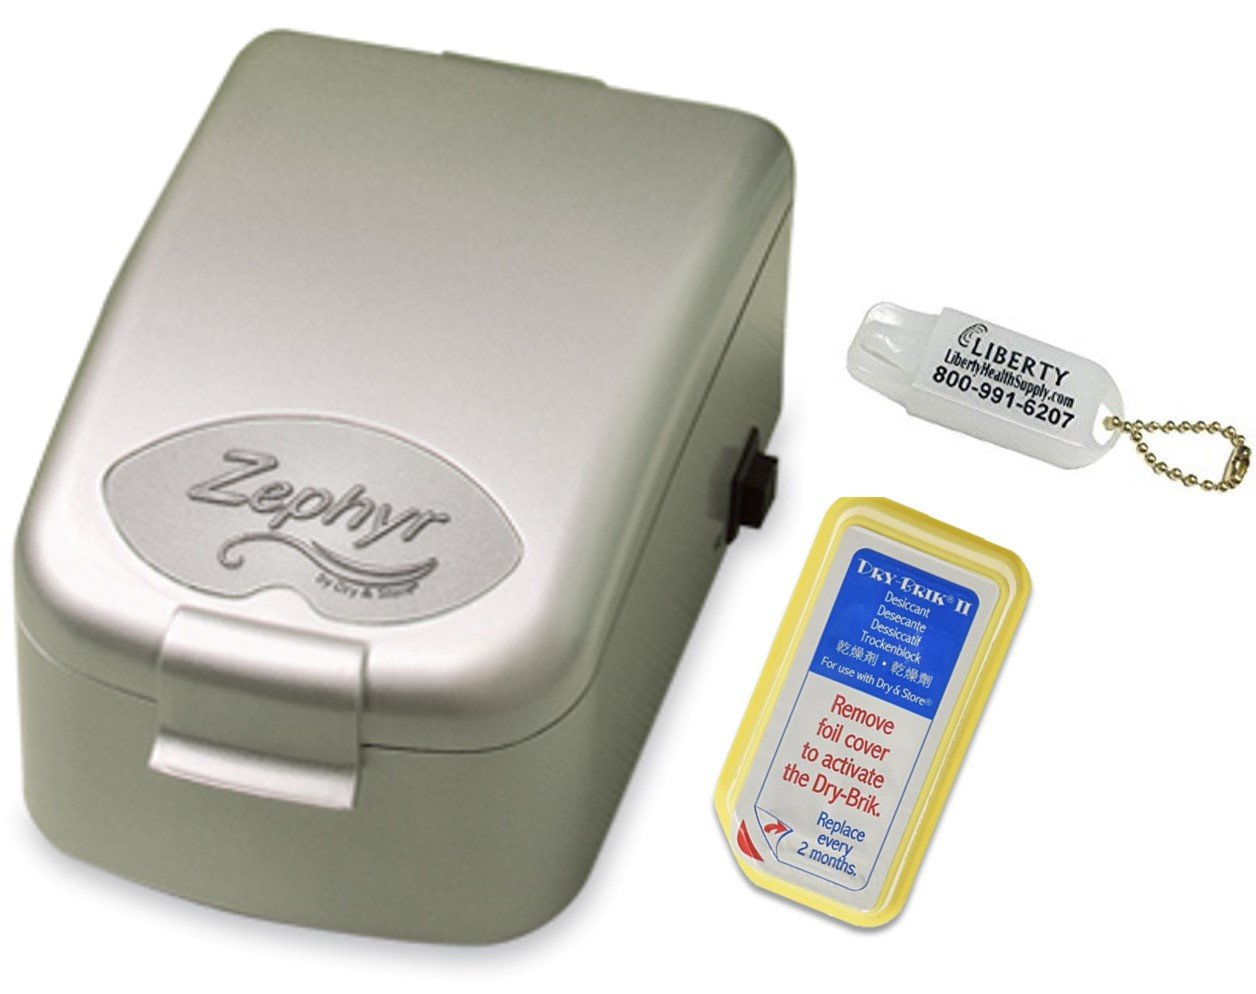 Zephyr Dry & Store Hearing Aid Dryer with Carrying Case and Liberty Hearing Aid Battery Keychain